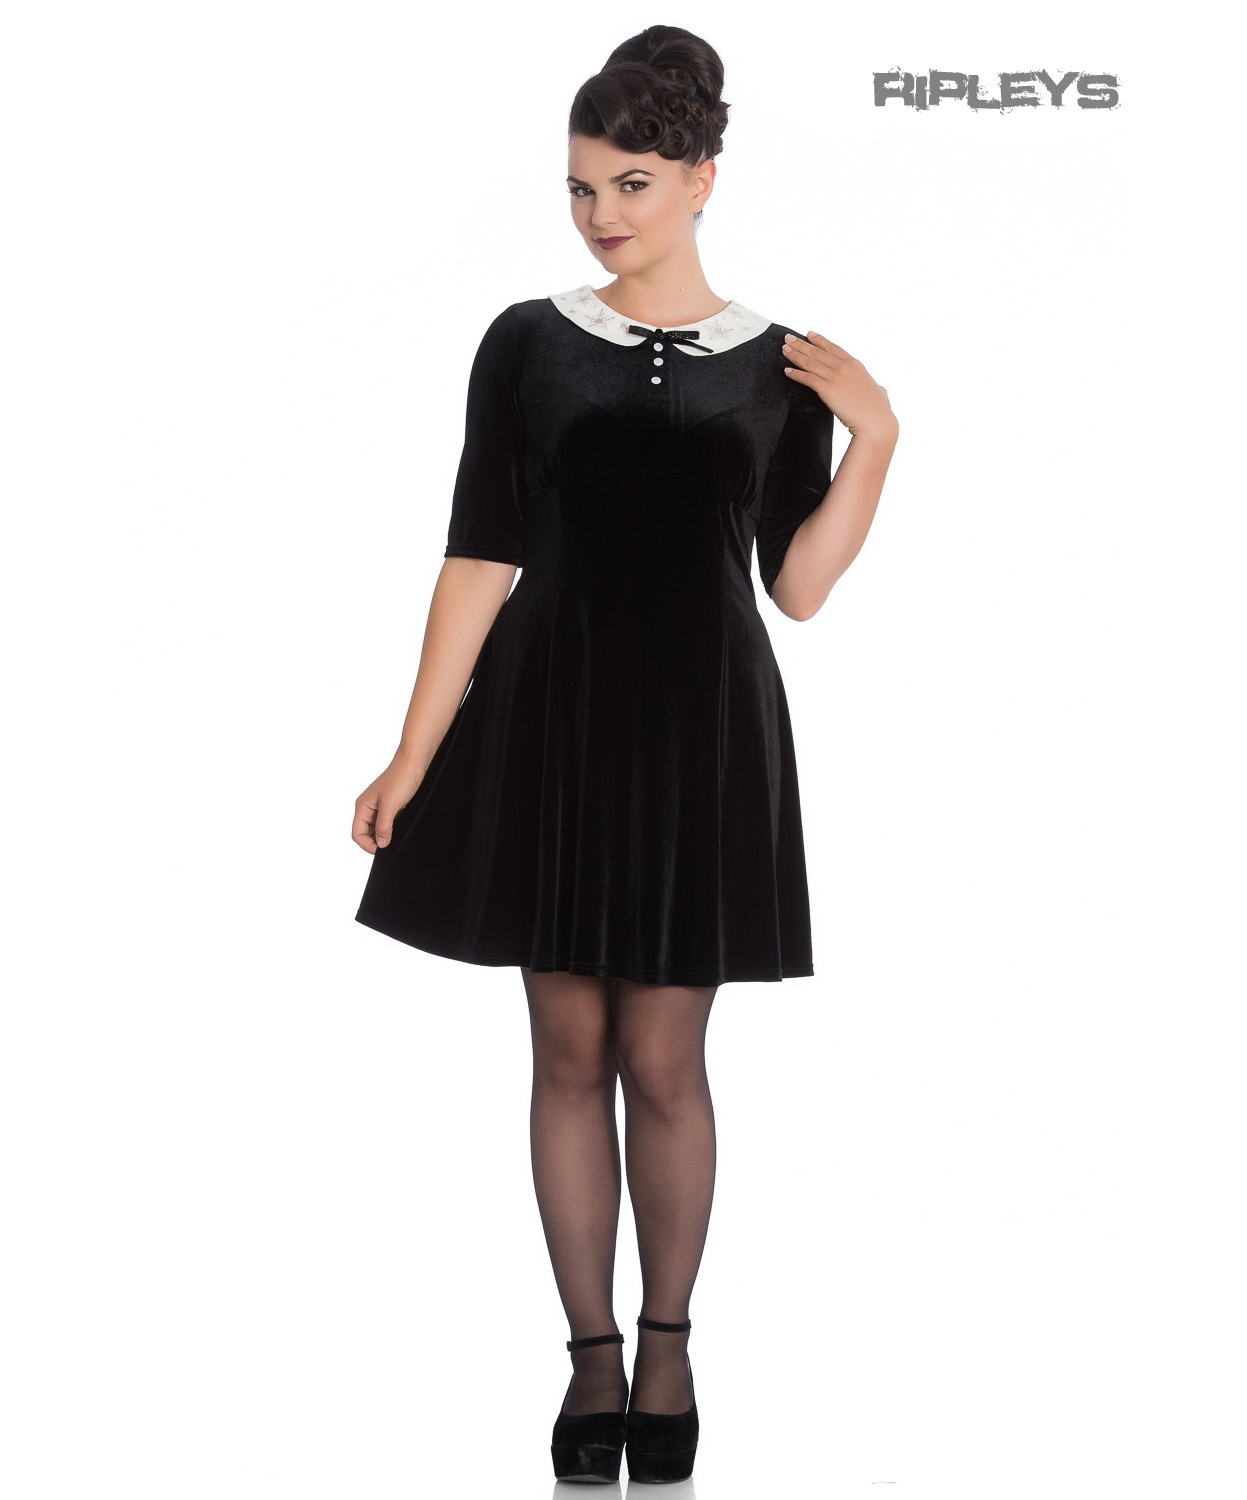 Hell-Bunny-Mini-Skater-Dress-Festive-Christmas-SNOWY-Black-Snowflakes-All-Sizes thumbnail 22